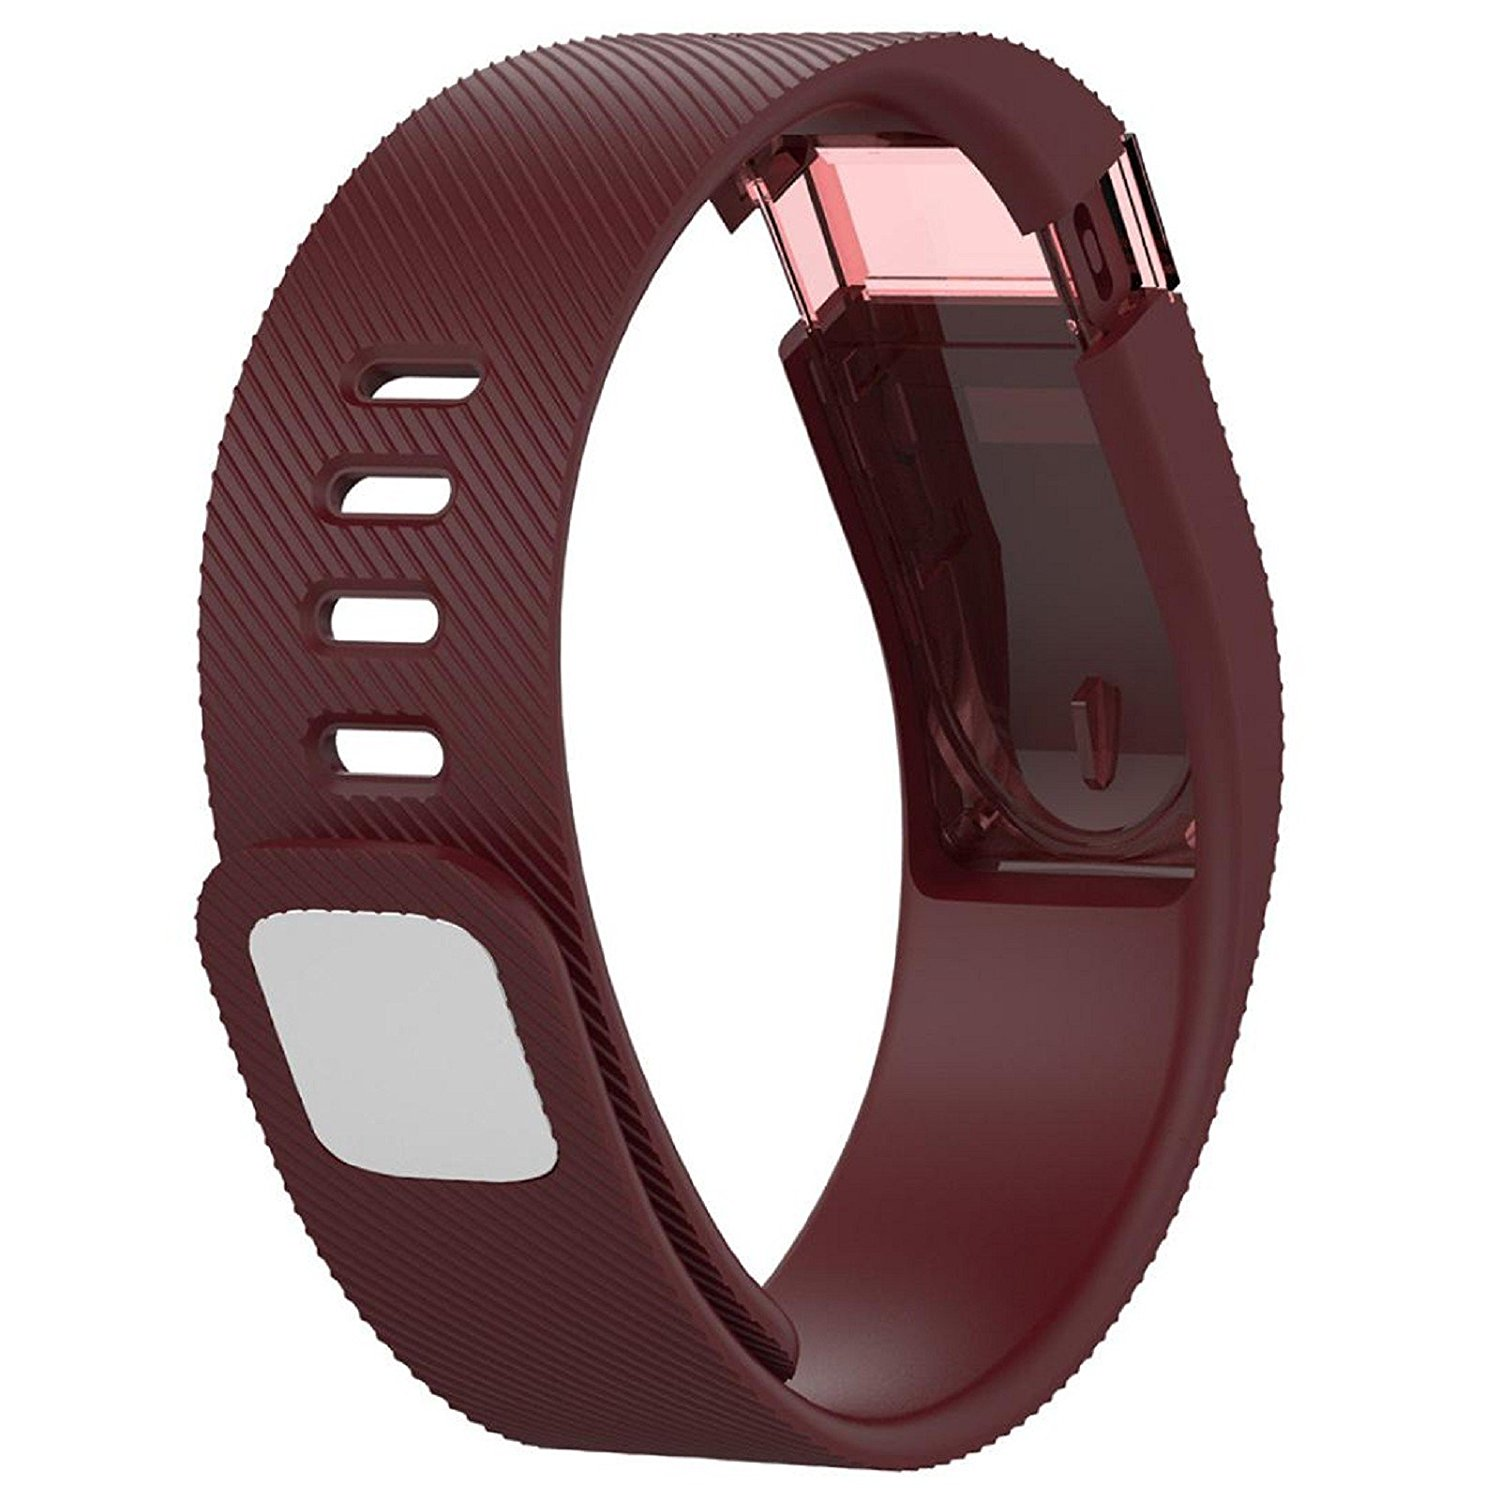 Owill Durable Solid Colour Soft Replacement Silicone Band Rubber Strap Wristband Bracelet For Fitbit Charge (Red)